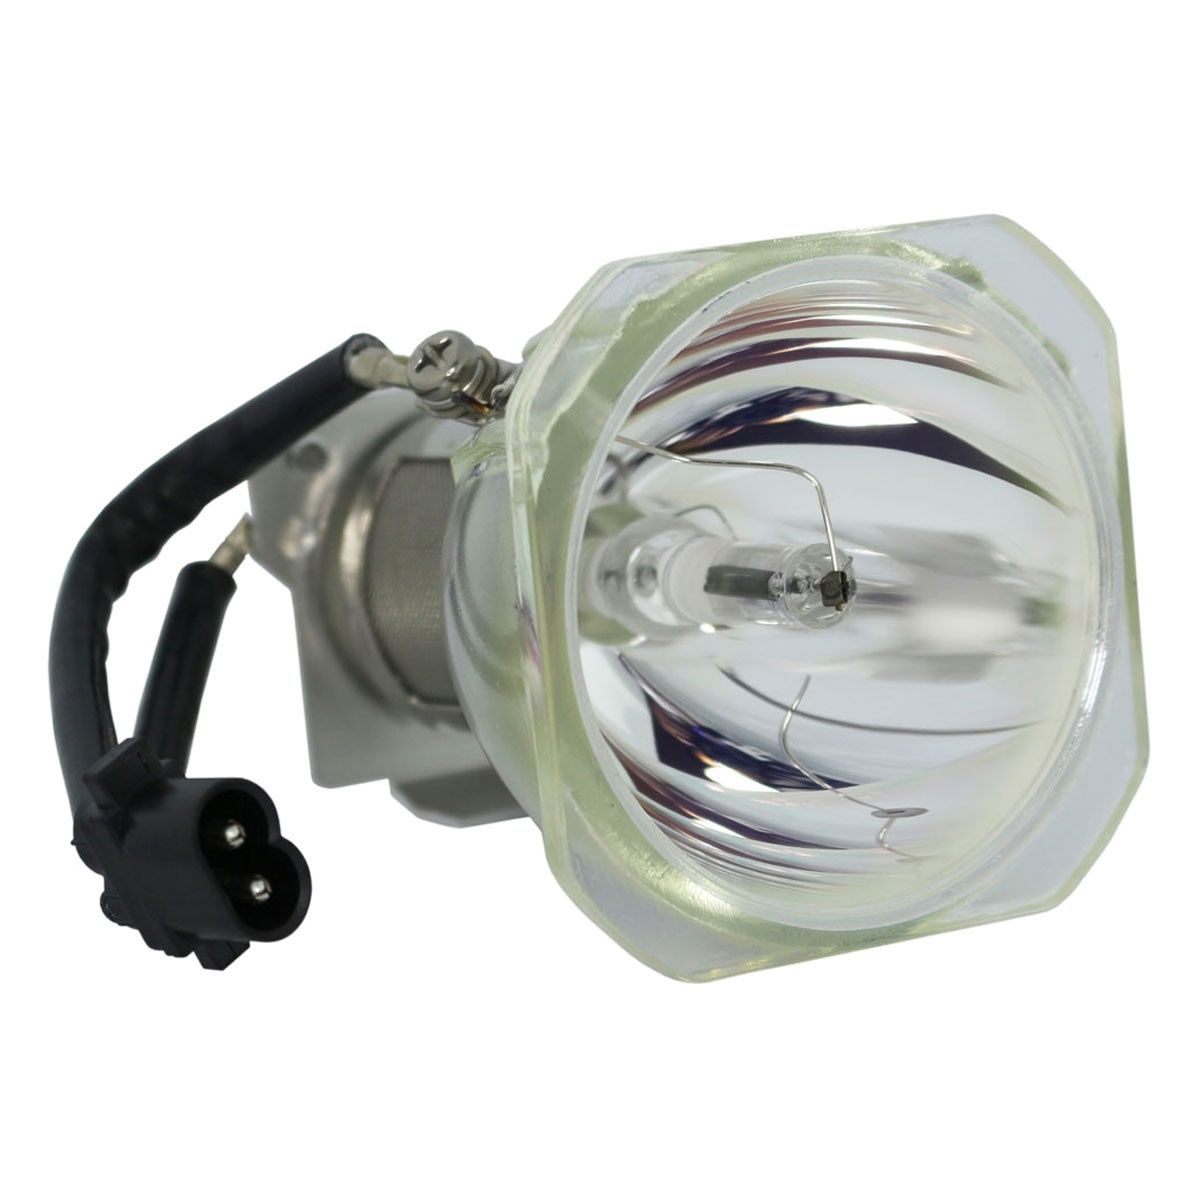 Compatible Bare Bulb AN-XR20L2 for SHARP PG-MB55 PG-MB56 PG-MB56X PG-MB65 PG-MB65X PG-MB66X XG-MB65X Projector Lamp Bulb replacement projector lamp for sharp pg mb65 pg mb65x pg mb66x xg mb55x l xg mb65x l xg mb67x l projectors